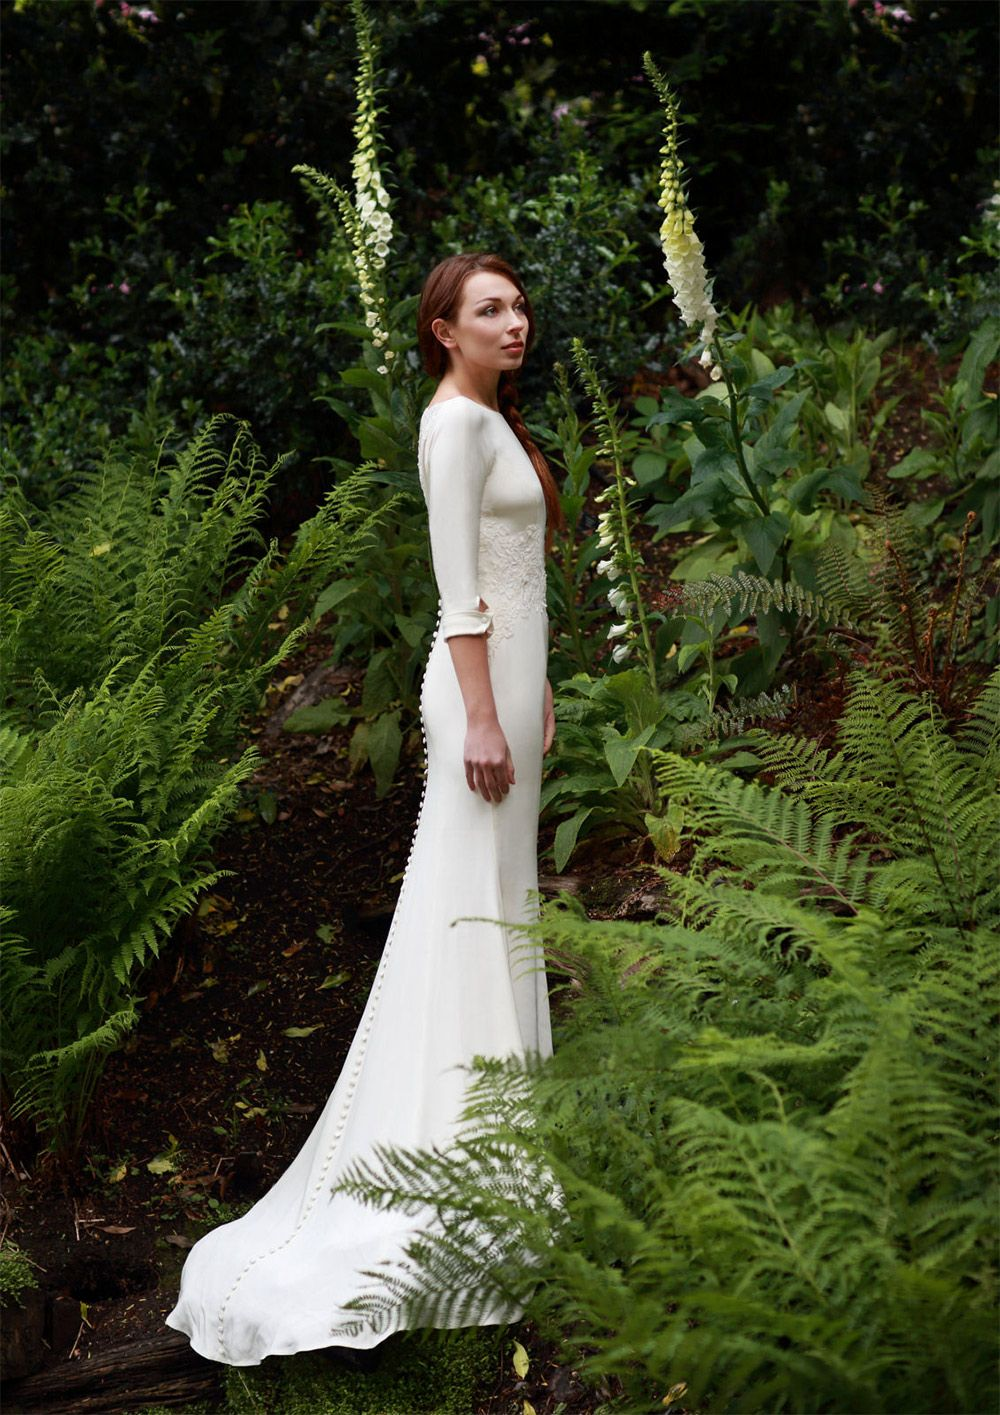 Bella Swan from Twilight\'s Wedding Dress | hitched.co.uk ...